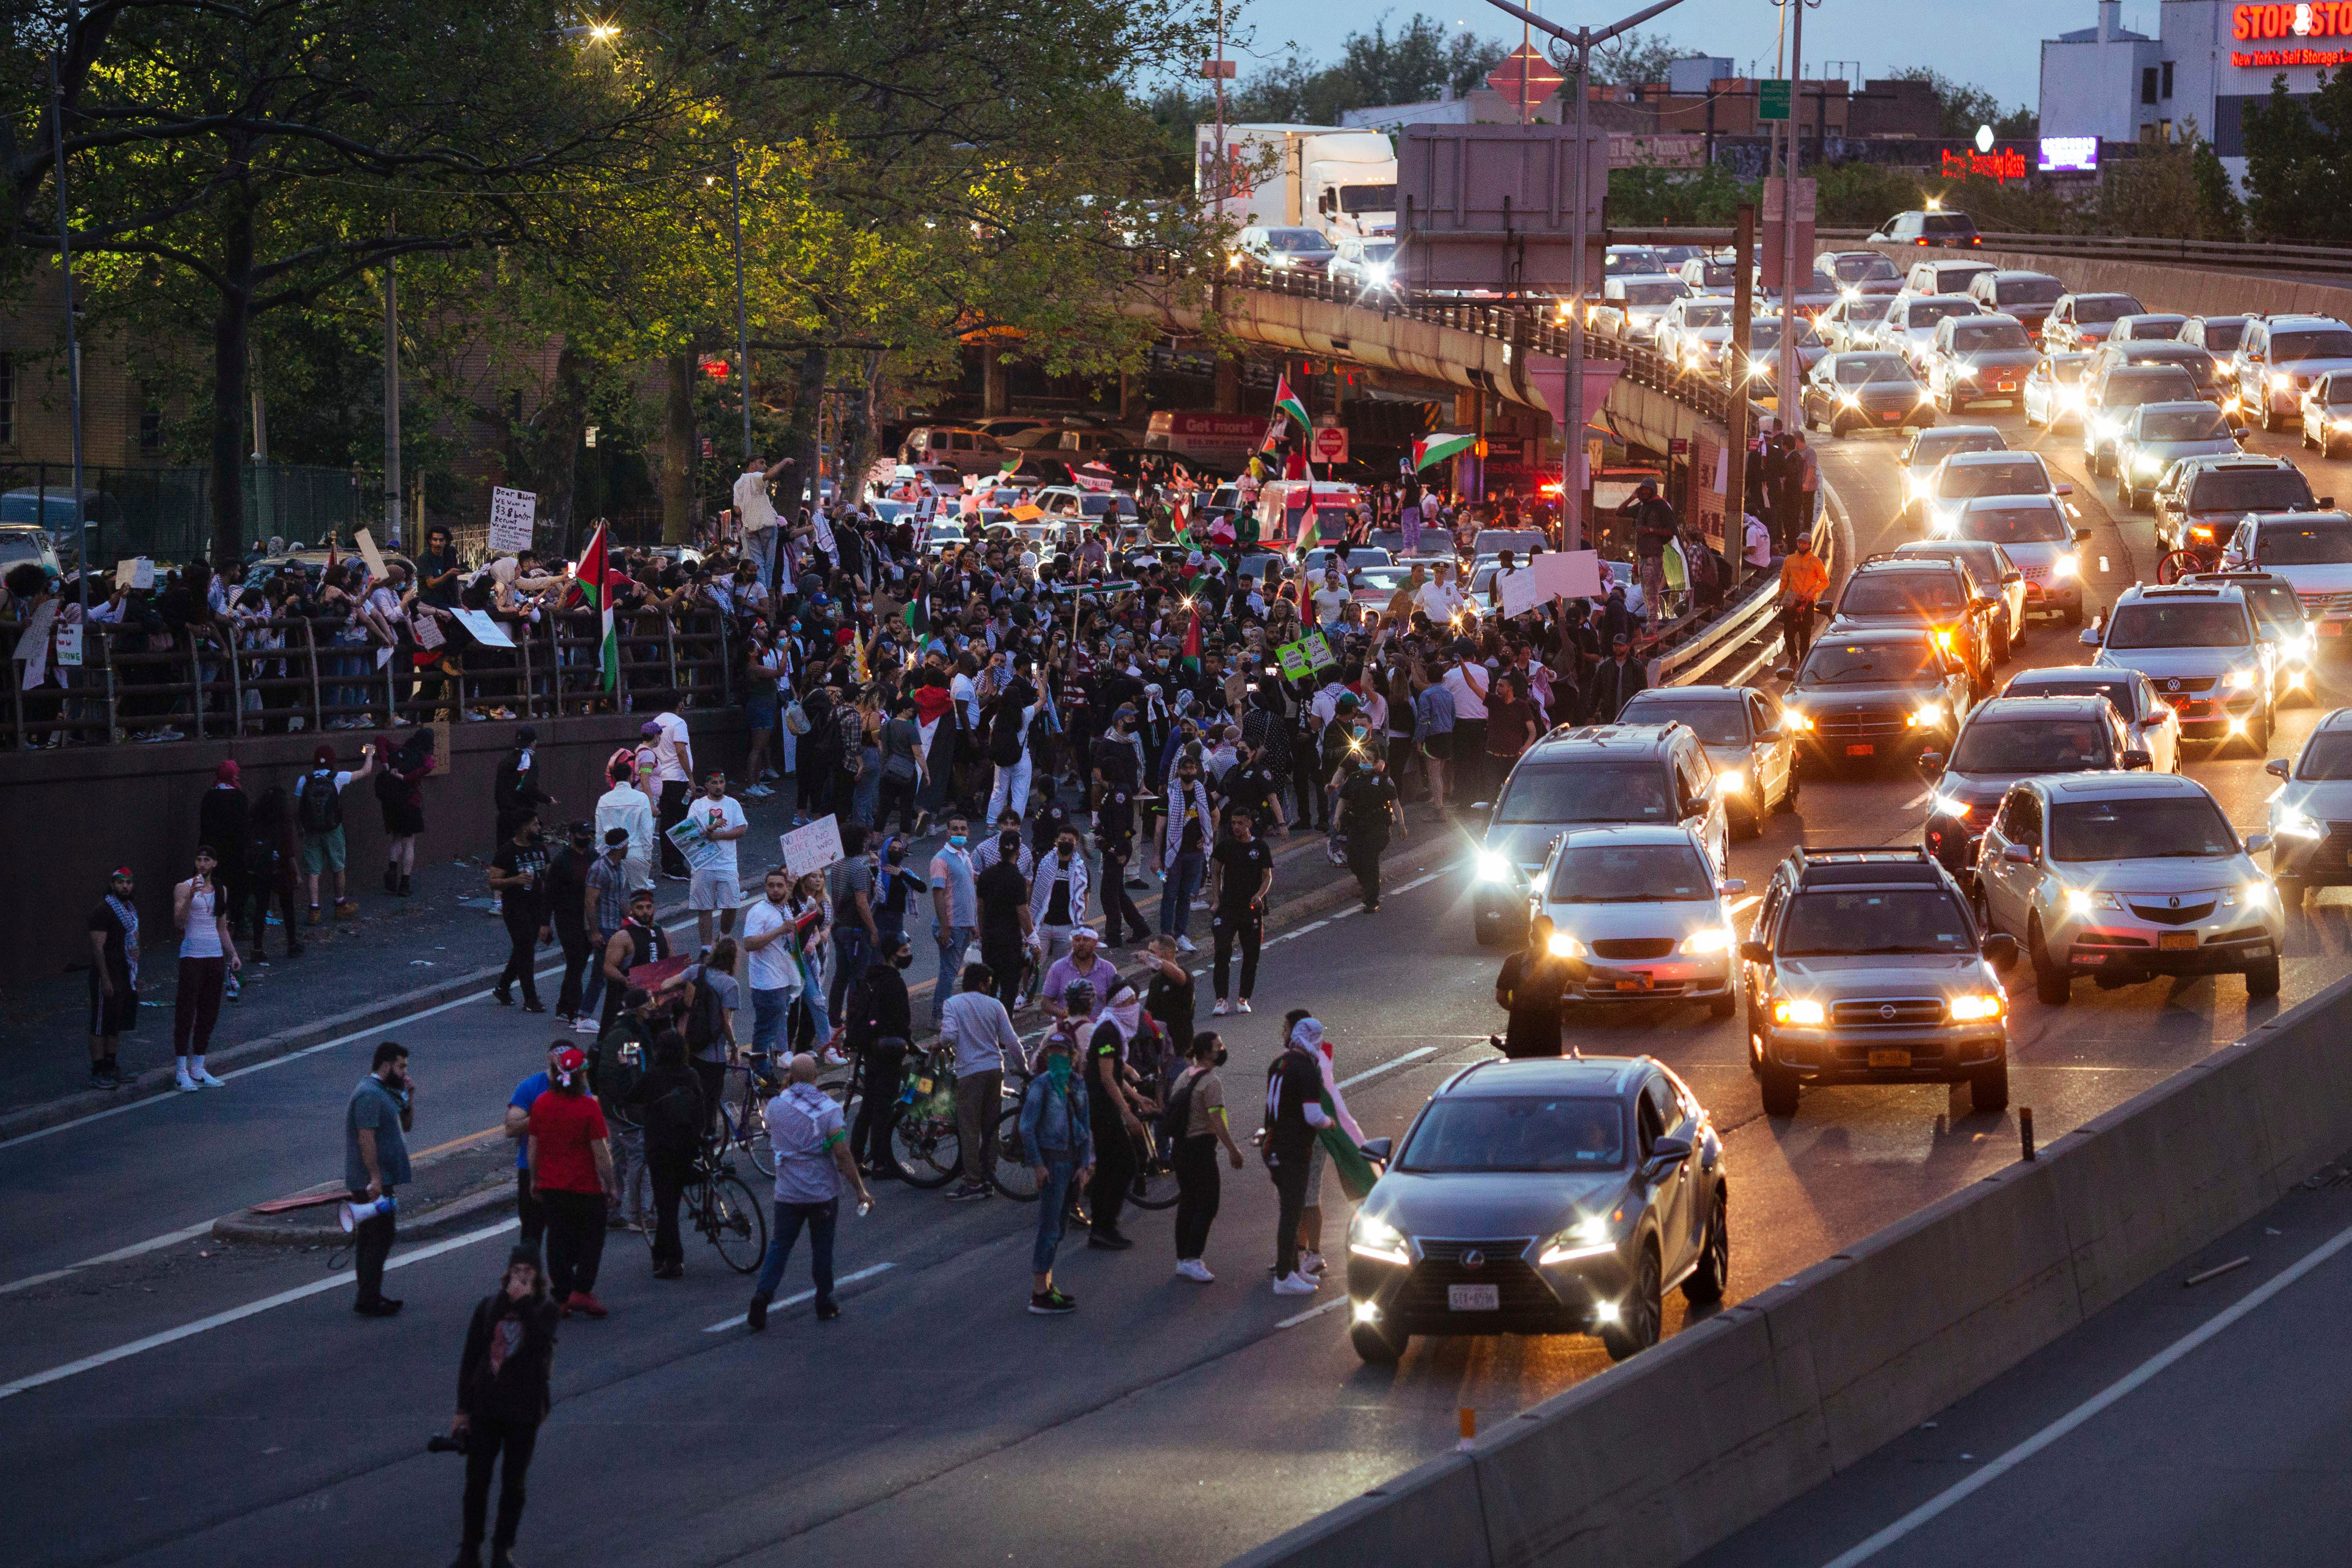 Protesters in major US cities decry airstrikes over Gaza 2